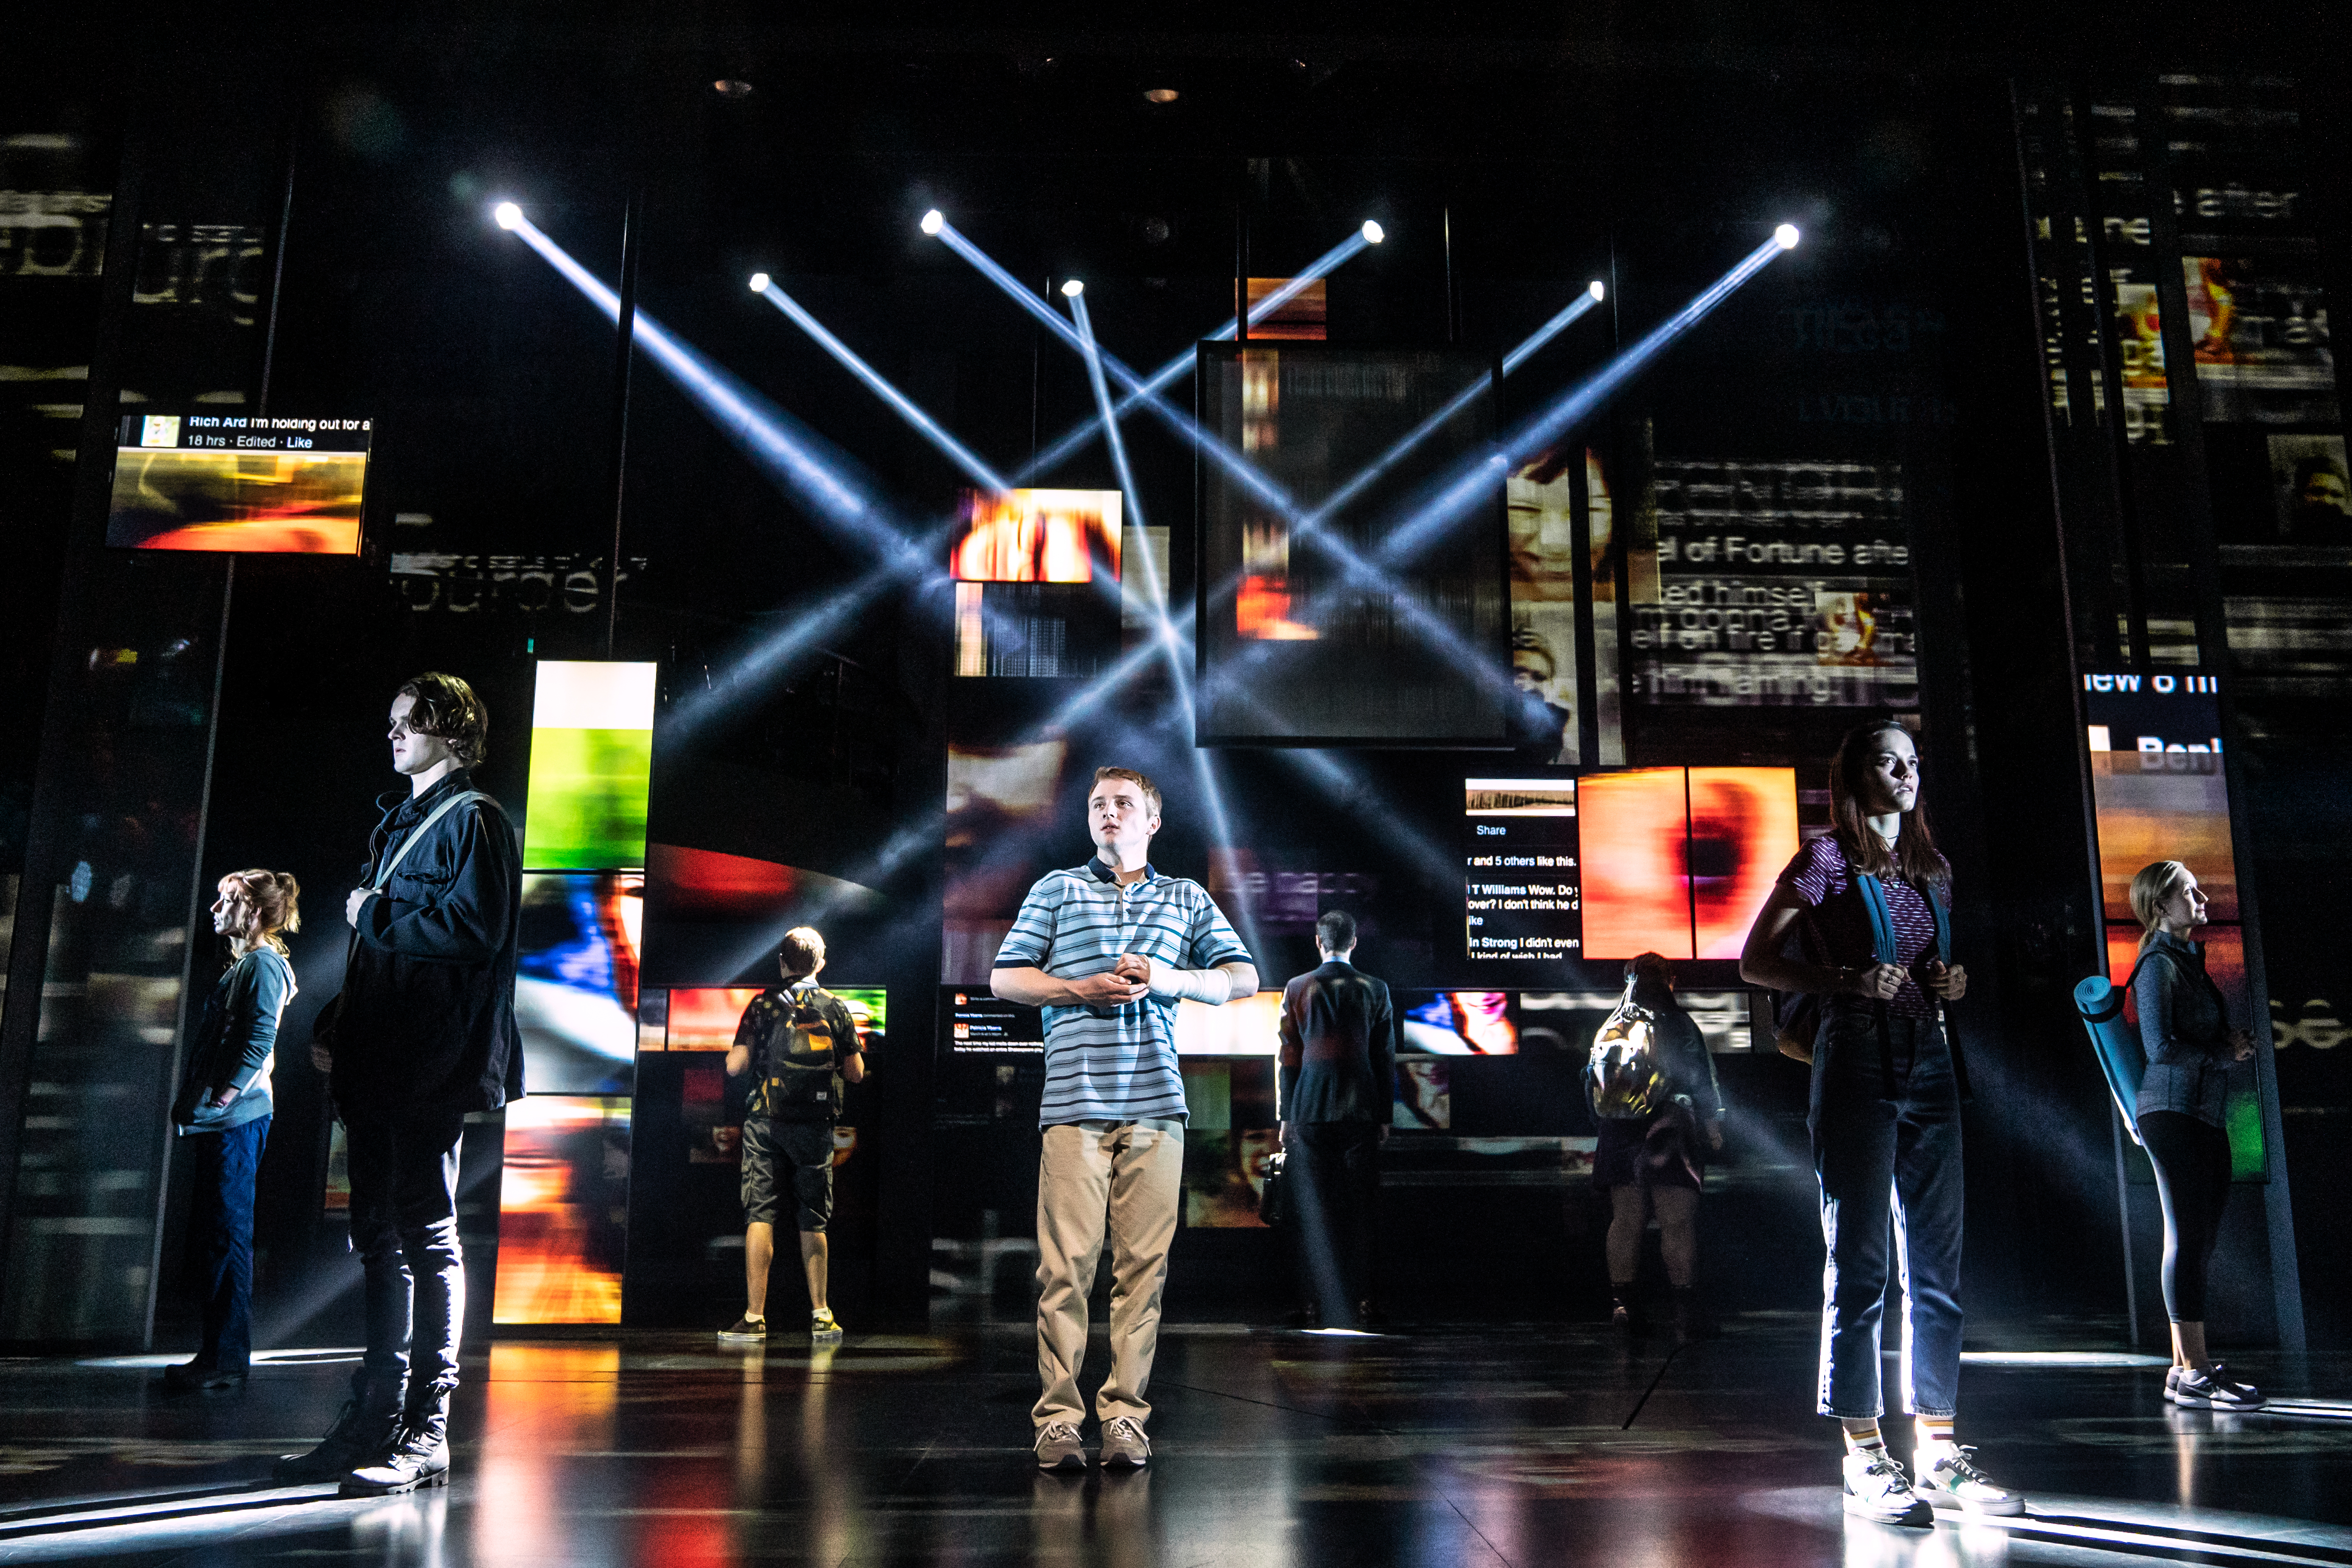 Dear Evan Hansen stars Sam Tutty (centre) as a depressed, isolated teenager in the latest musical to hit the west end (Photo credit: Matthew Murphy)